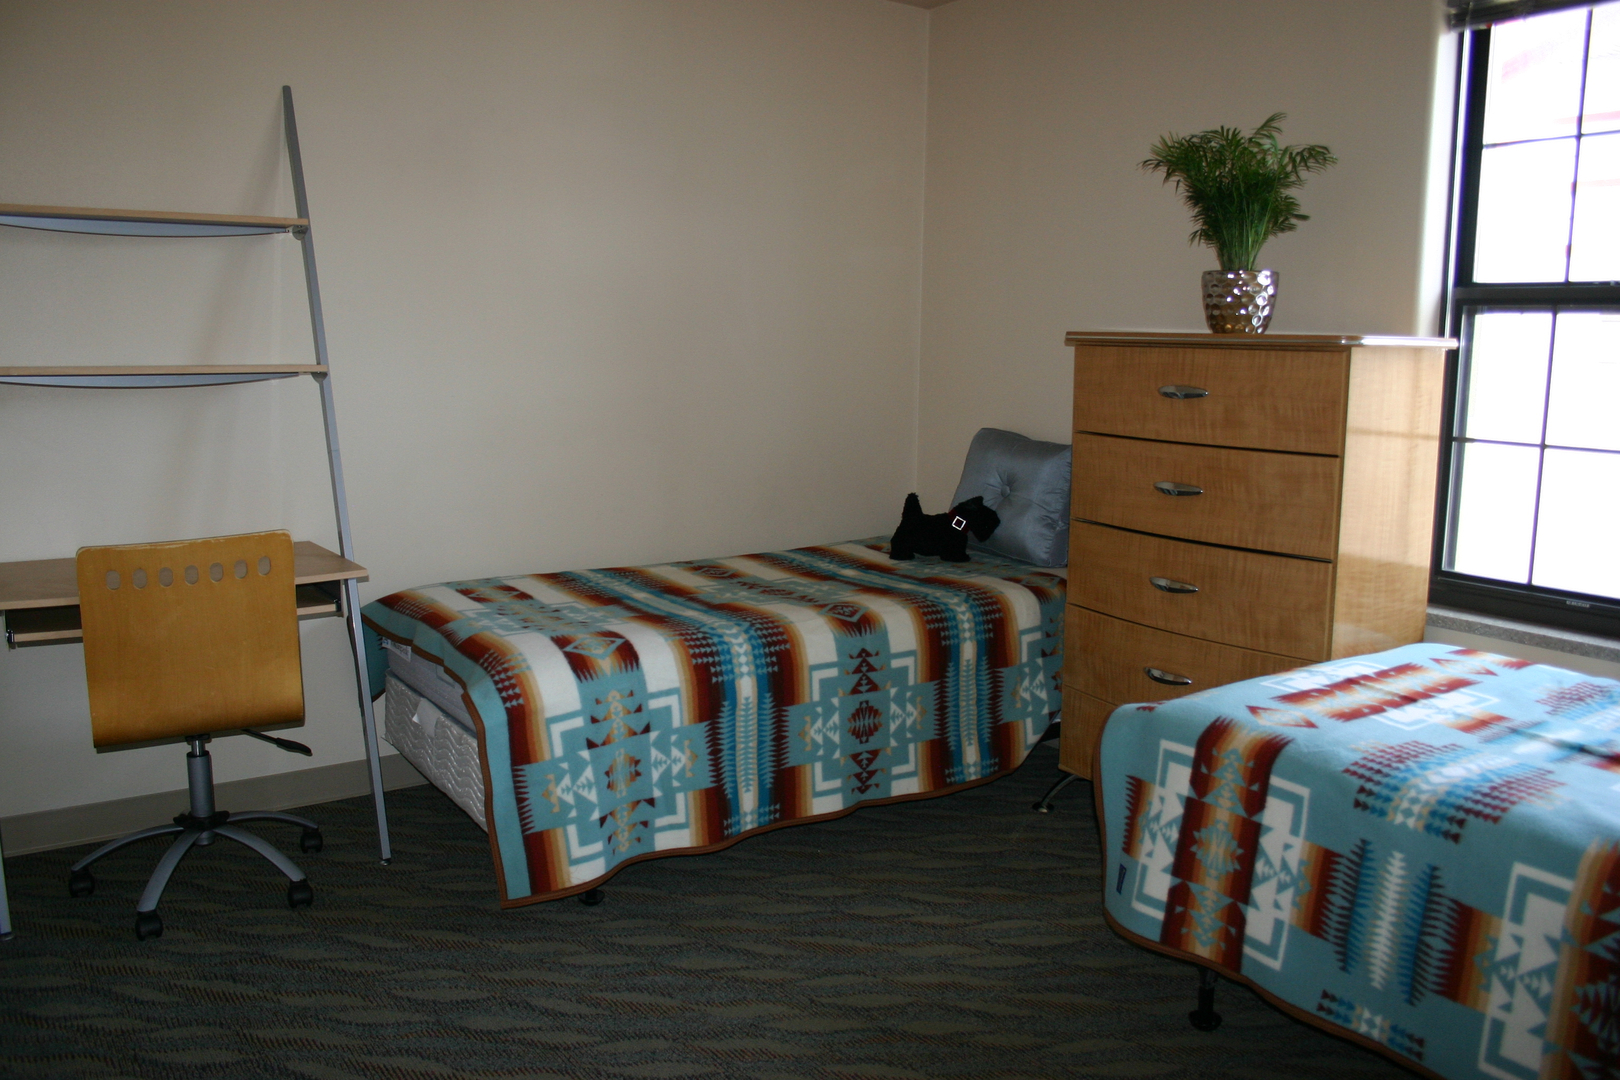 The Aberdeen Apartments offer large bedrooms suitable to share with a roommate